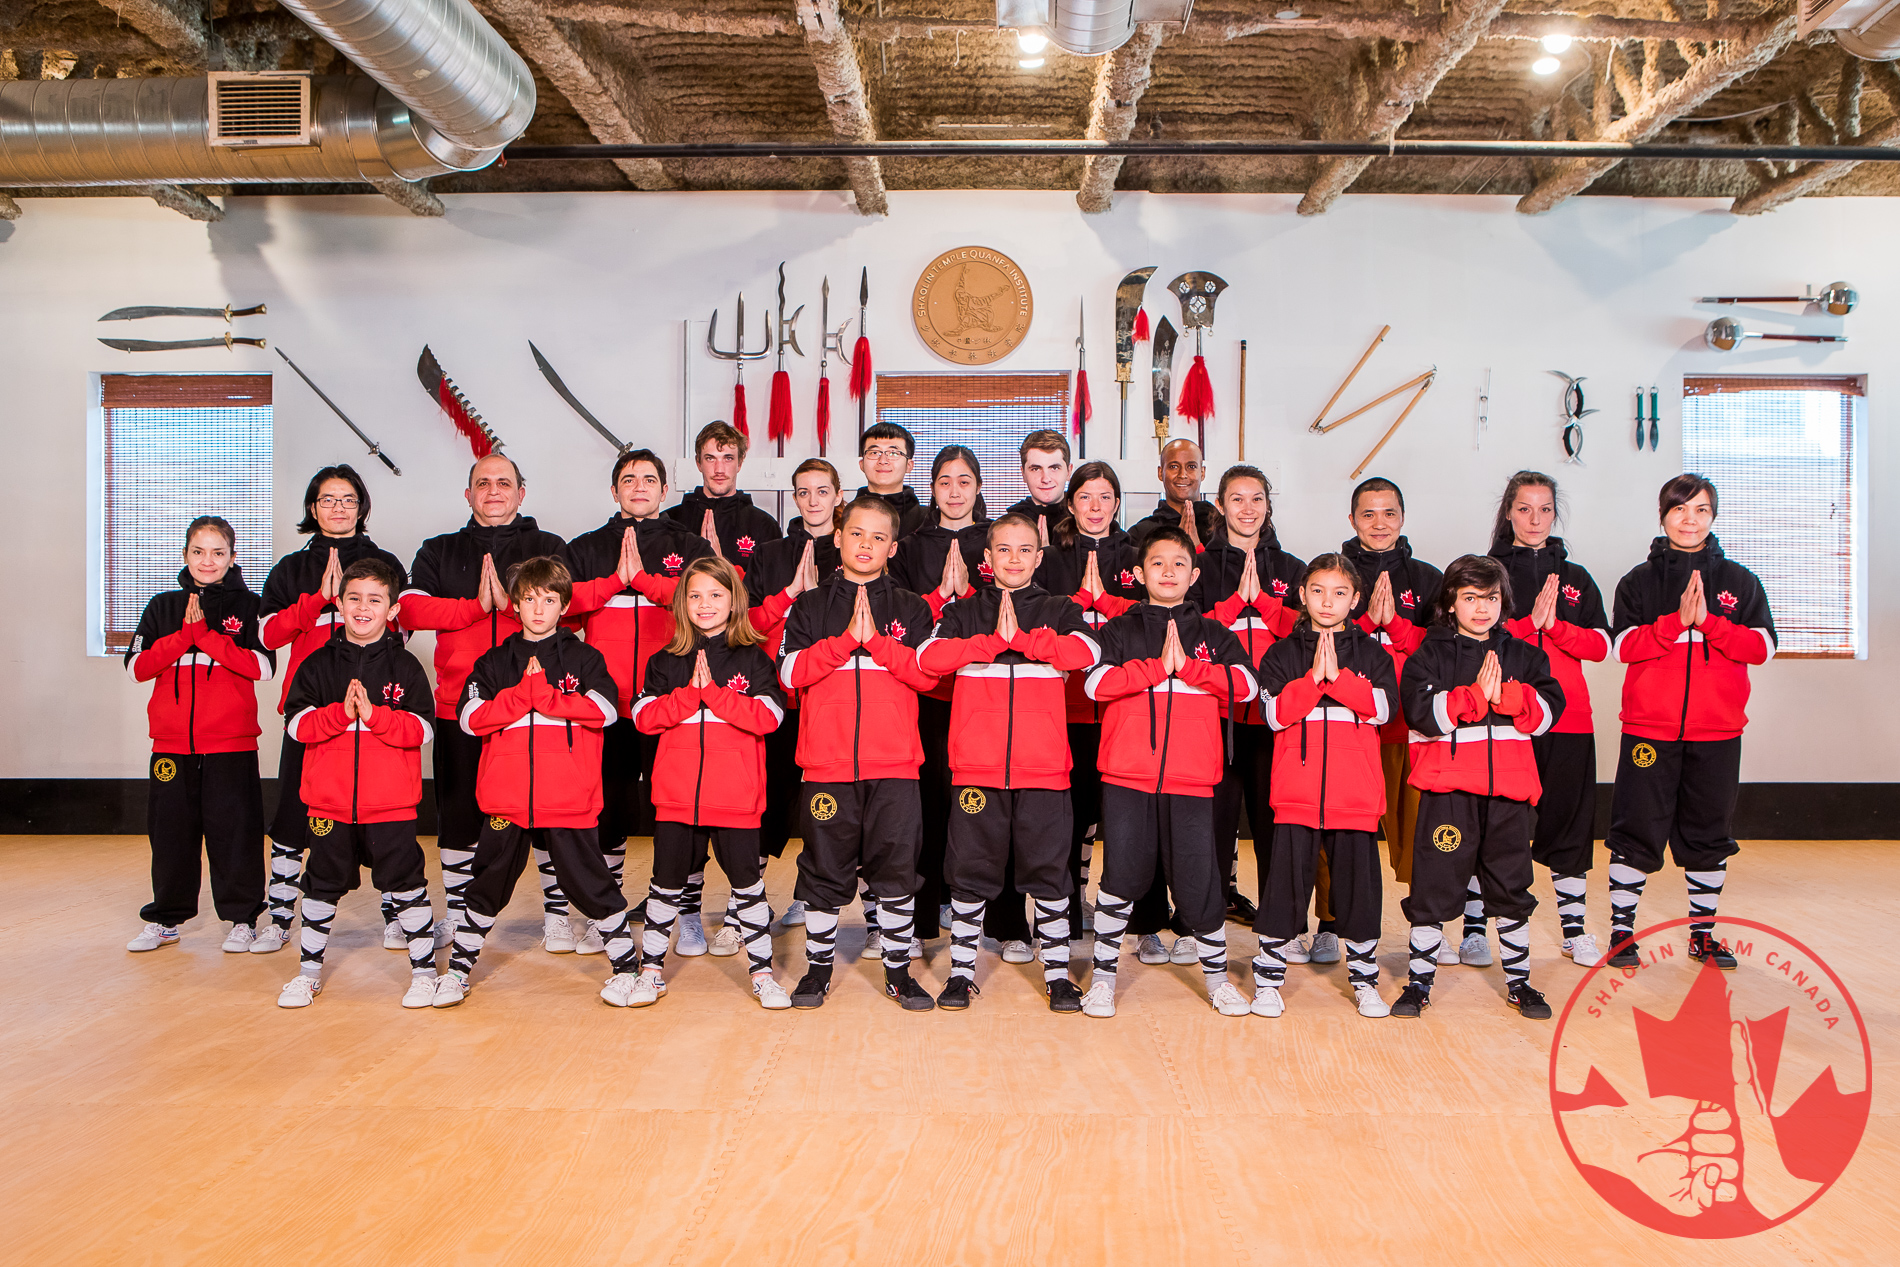 Thank you OCTCM for sponsoring Shaolin Team Canada!